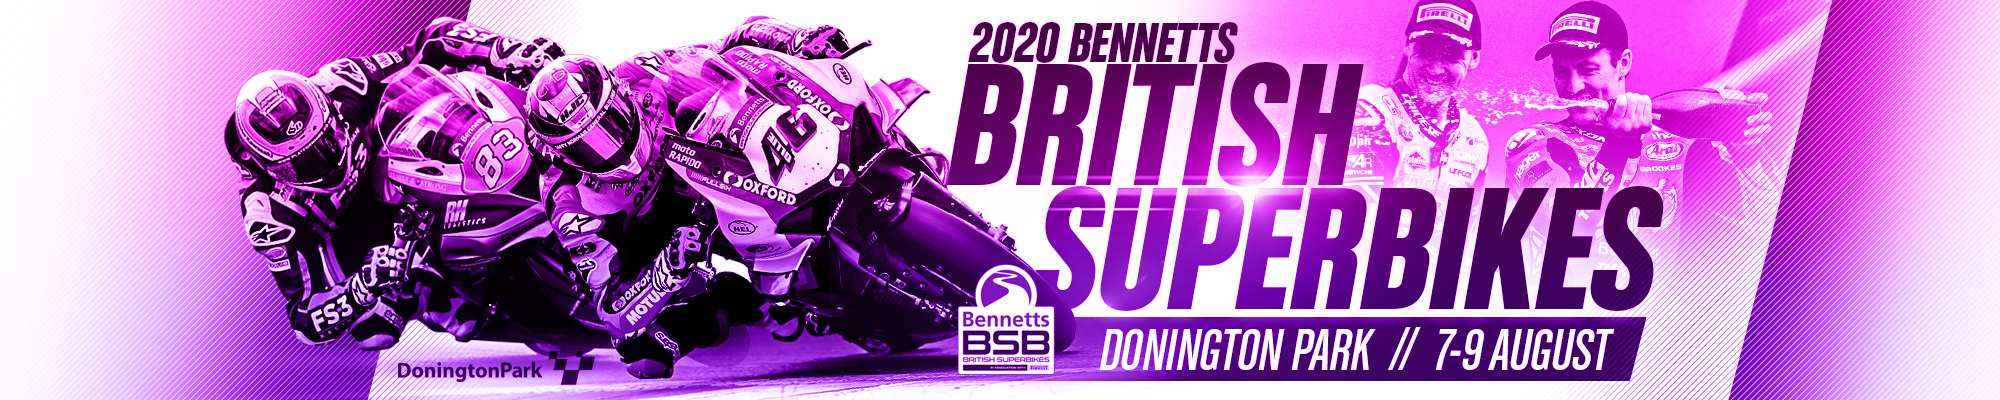 Bennetts British Superbike Championship - POSTPONED